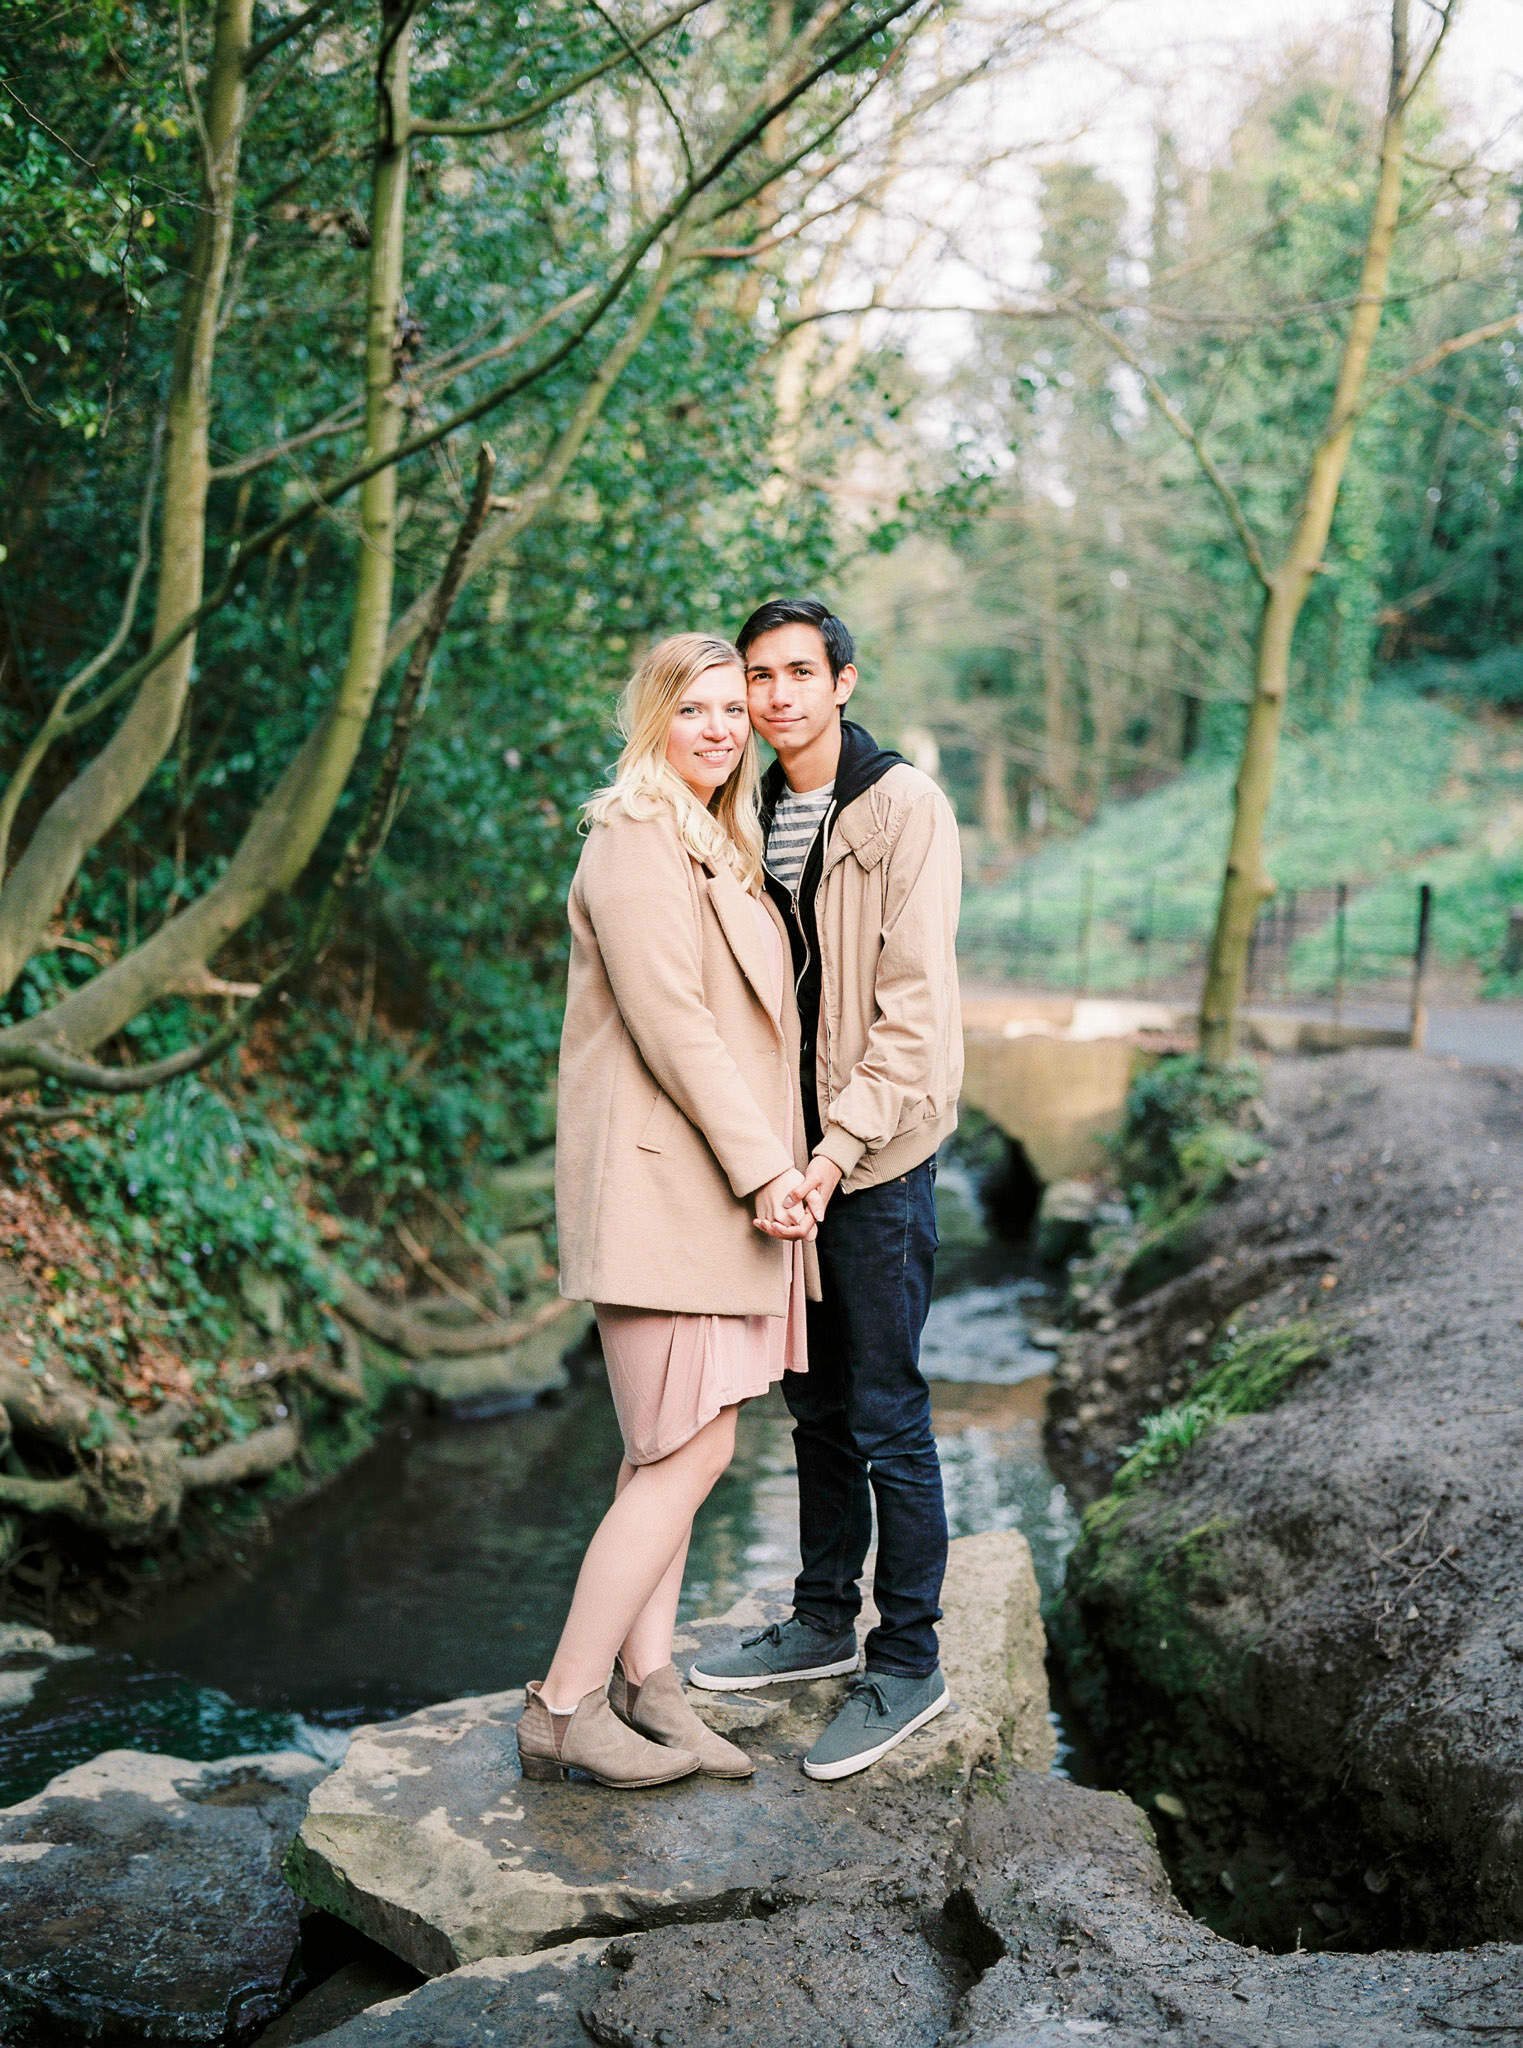 March April 2017 42 - Fun and Relaxed wedding and elopement photography in Ireland, perfect for adventurous and outdoorsy couples